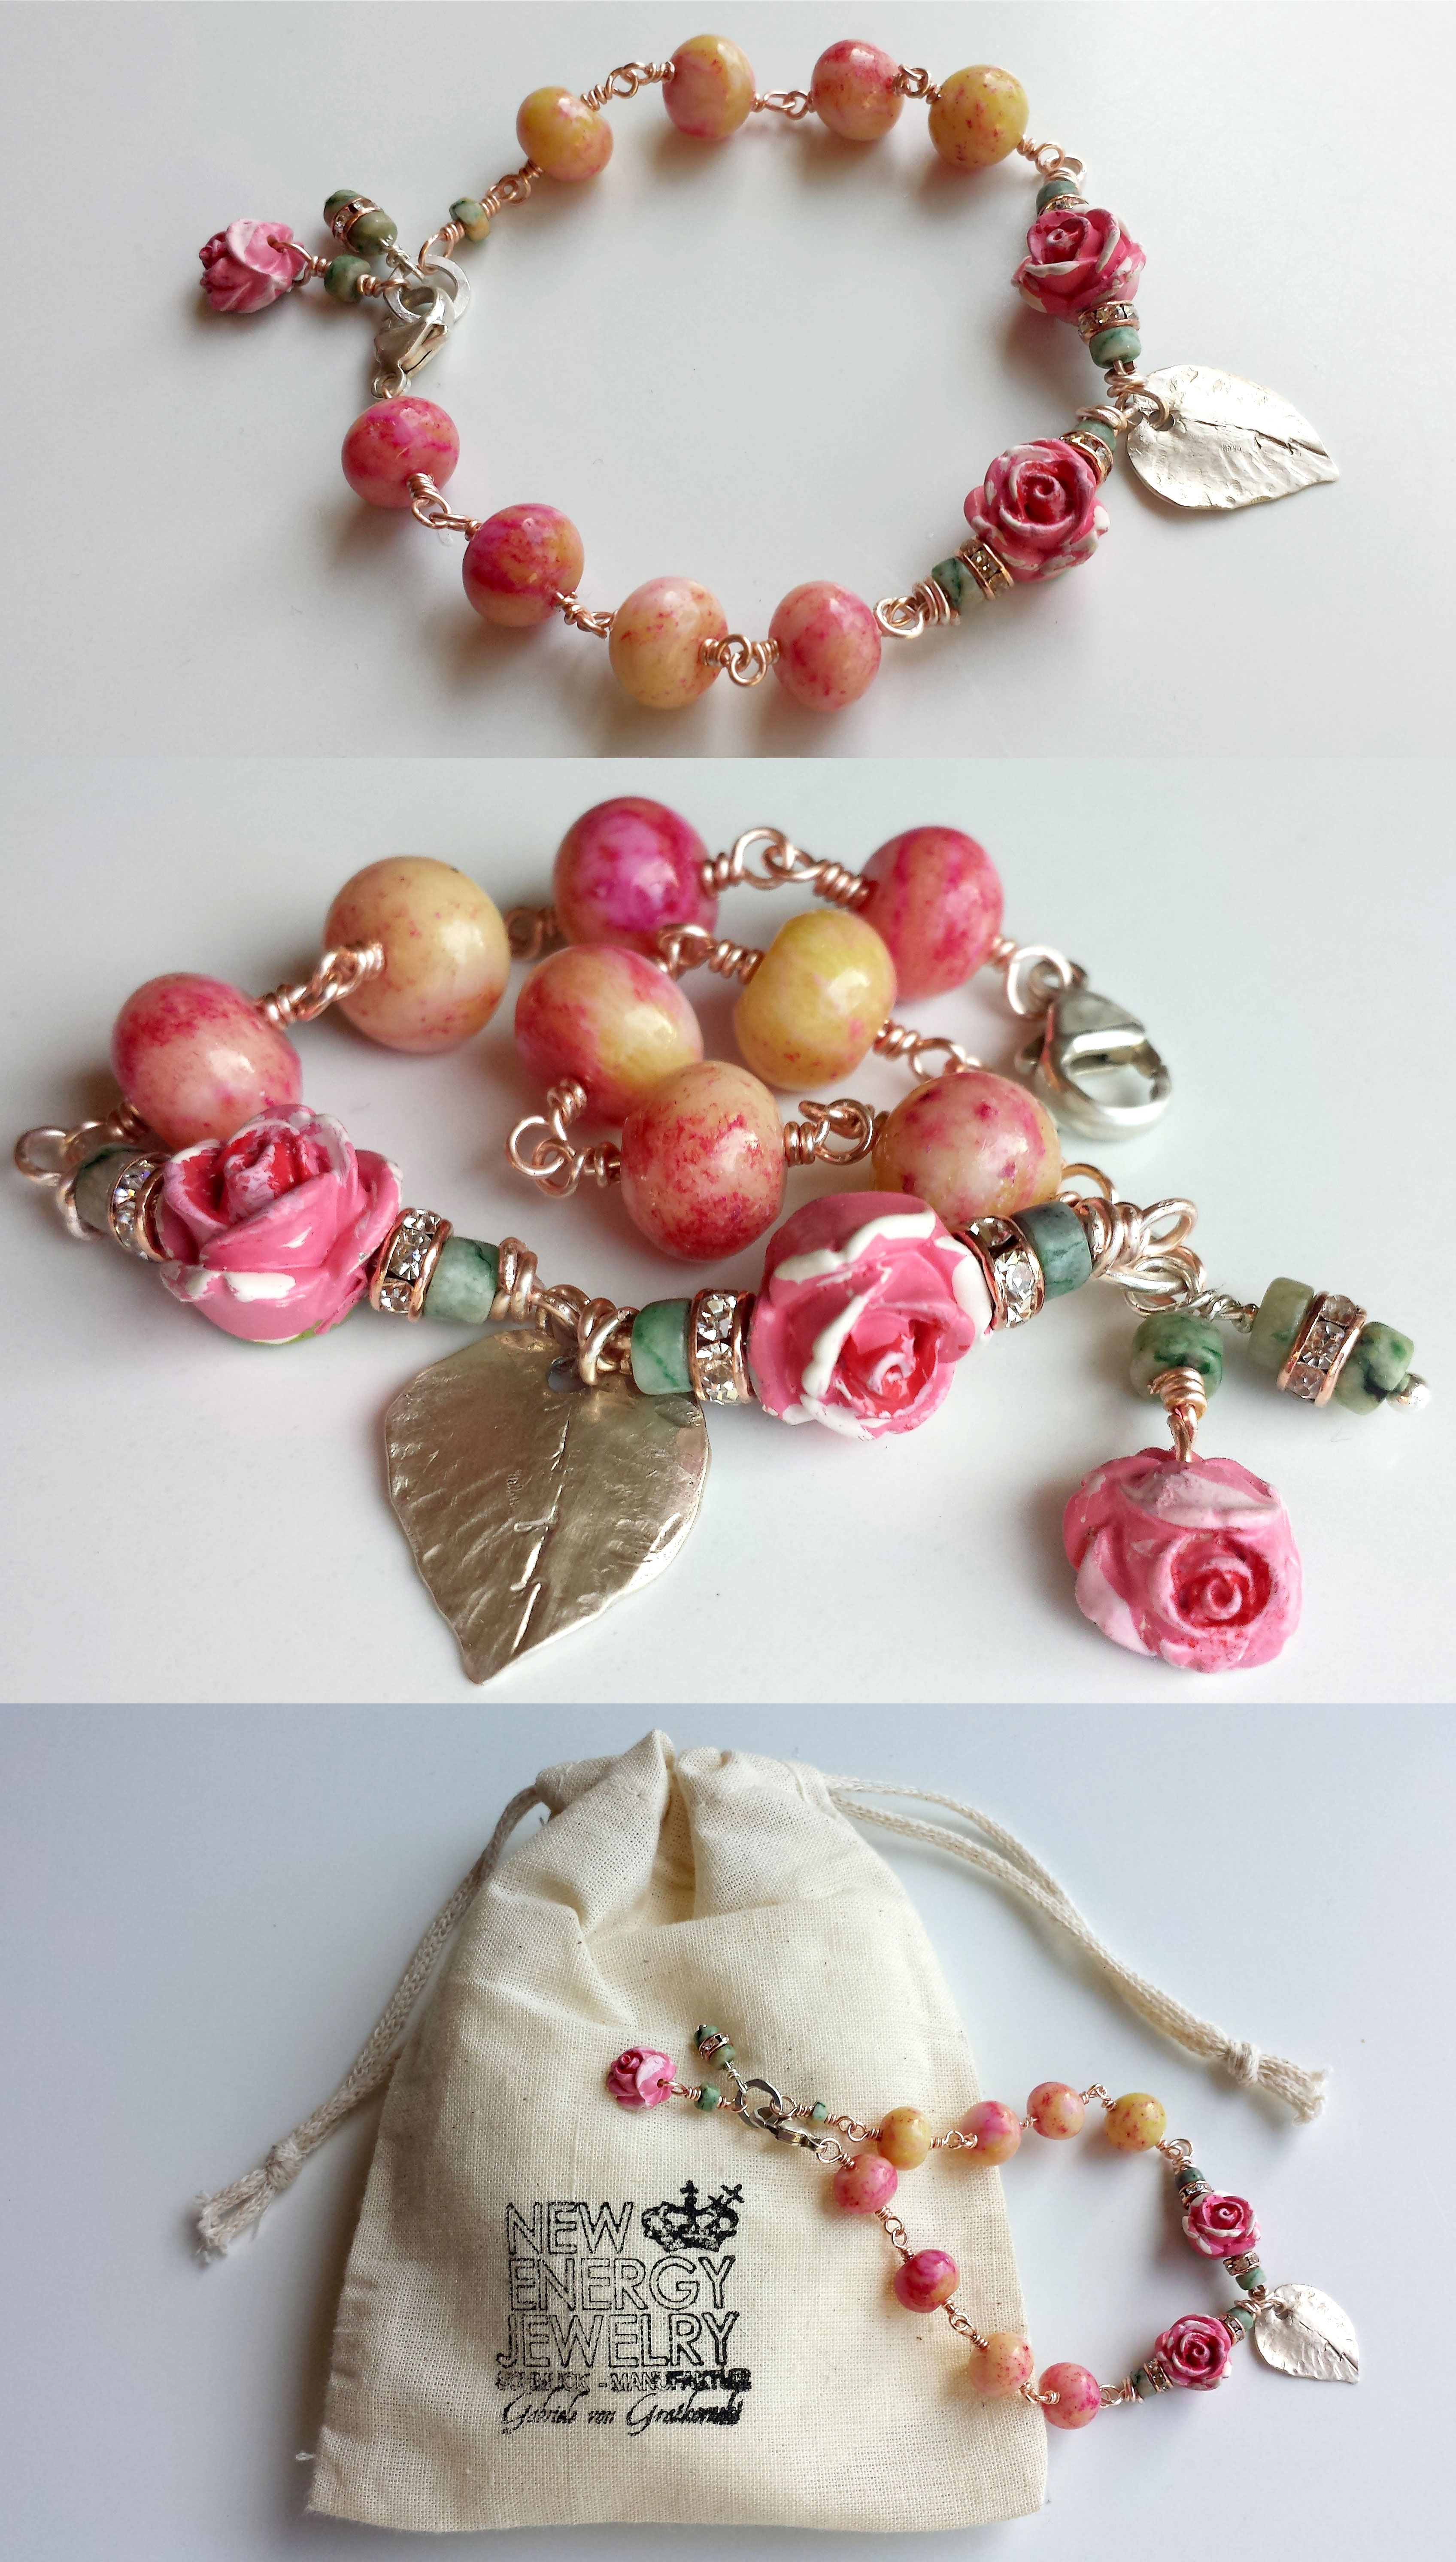 romancing the rose bracelet, silver leaf, jade, rosegold NEW ENERGY JEWELRY www.gabrielevongratkowski ... coming soon ...